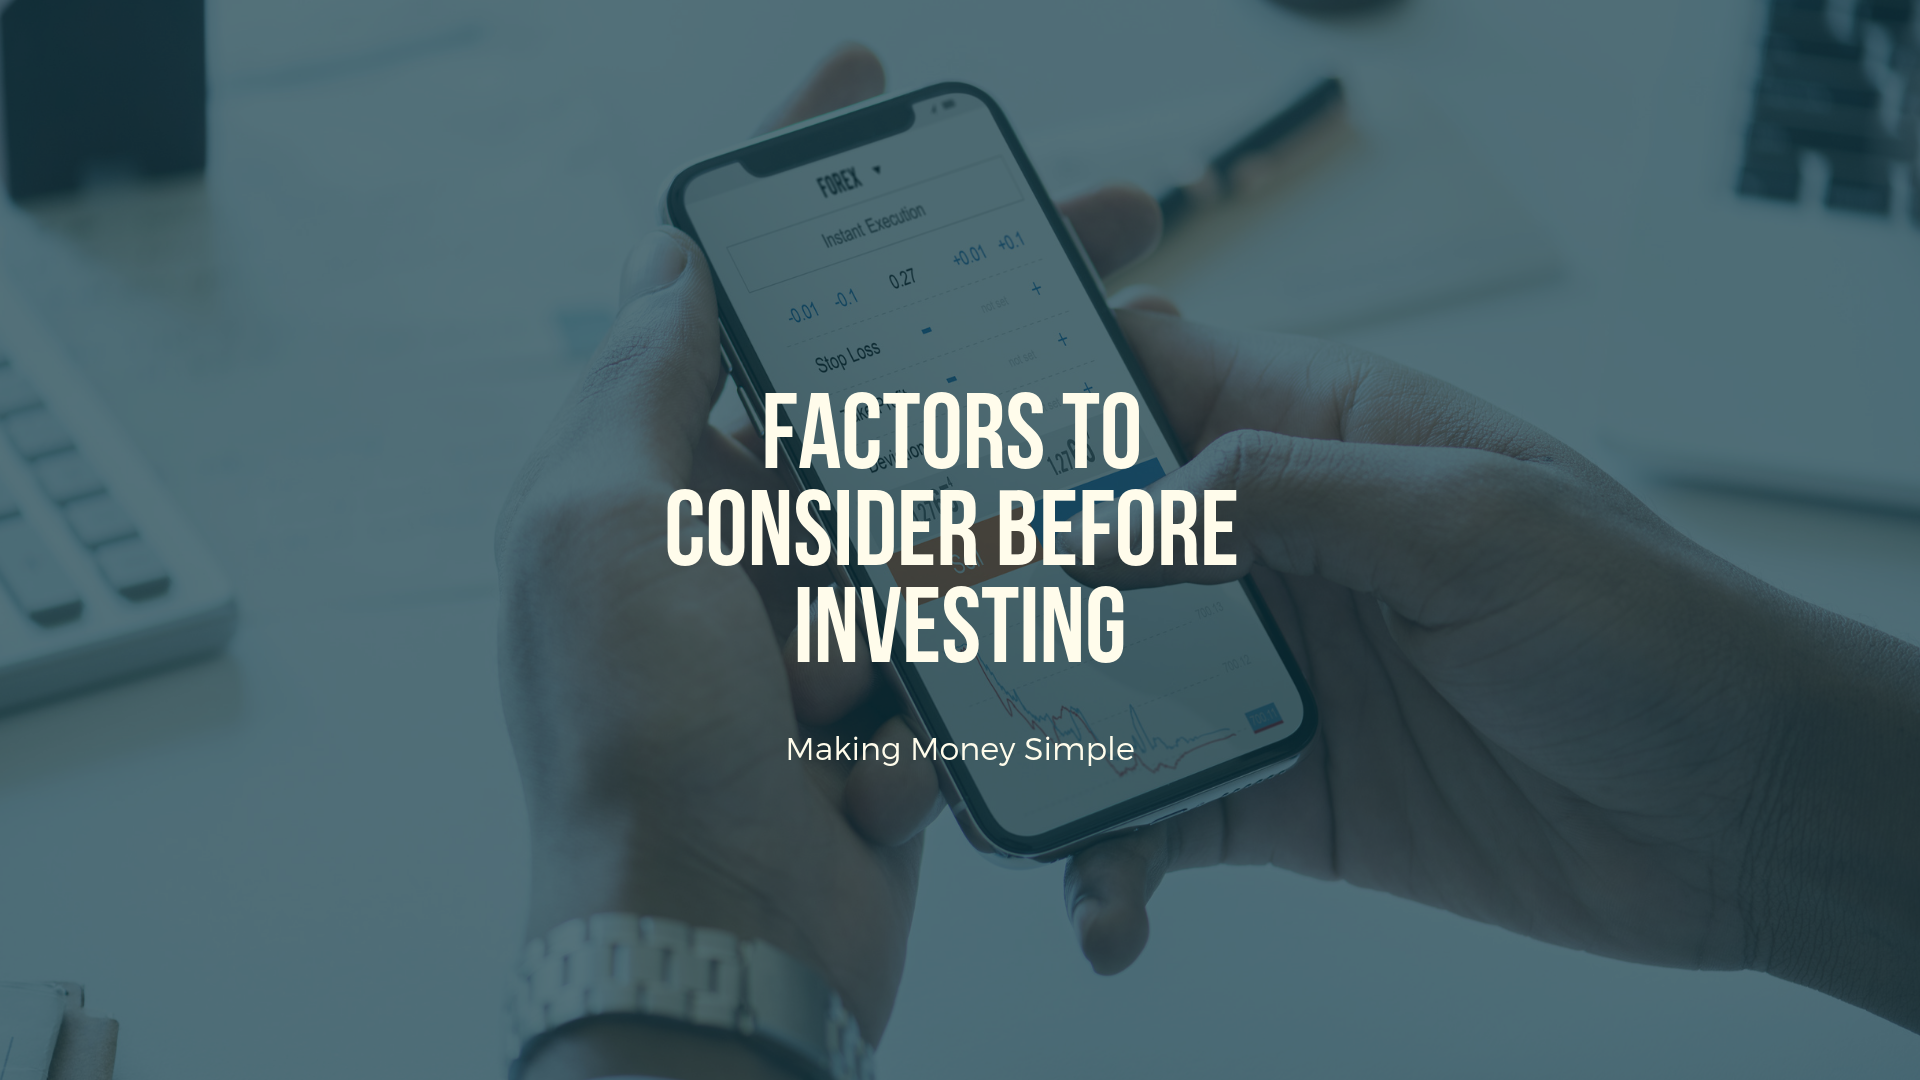 Factors to consider before Investing